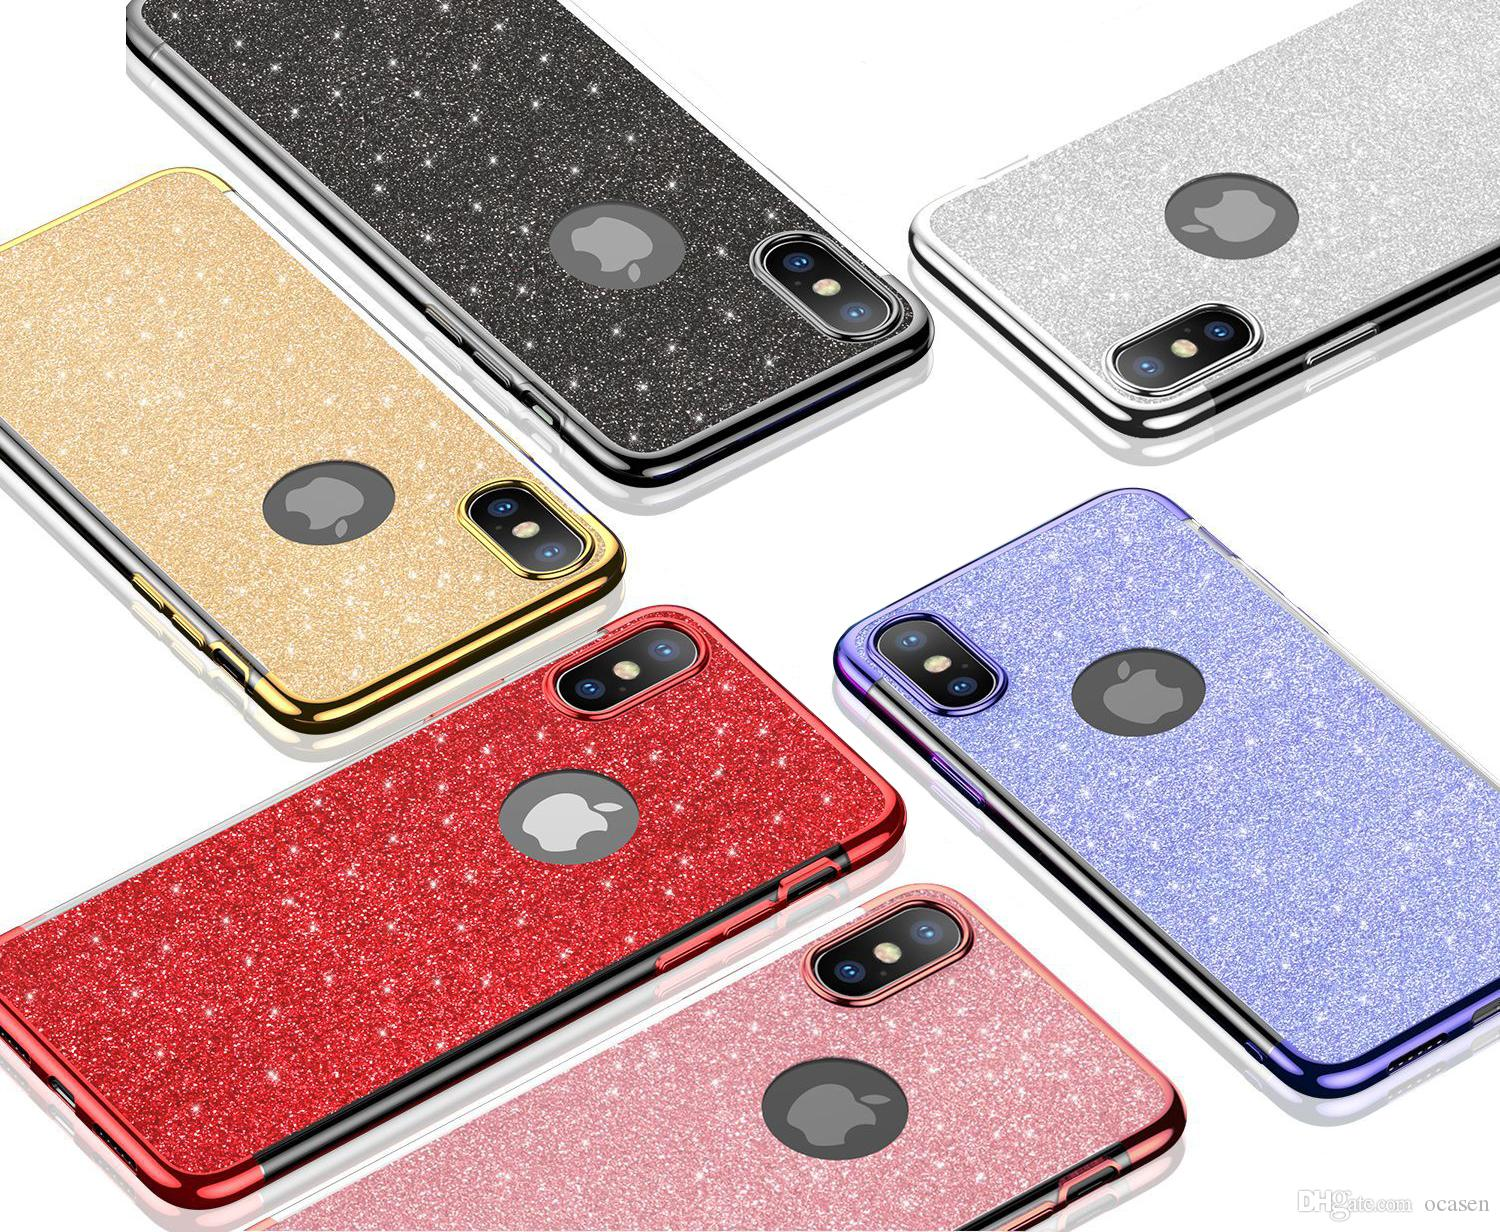 bdce0a30d Metal Electroplating Soft TPU Transparent Clear Back Gel Glitter Phone Case  For IPhone 6 6S 7 8 Plus X XR XS Max Reiko Cell Phone Case Western Cell  Phone ...